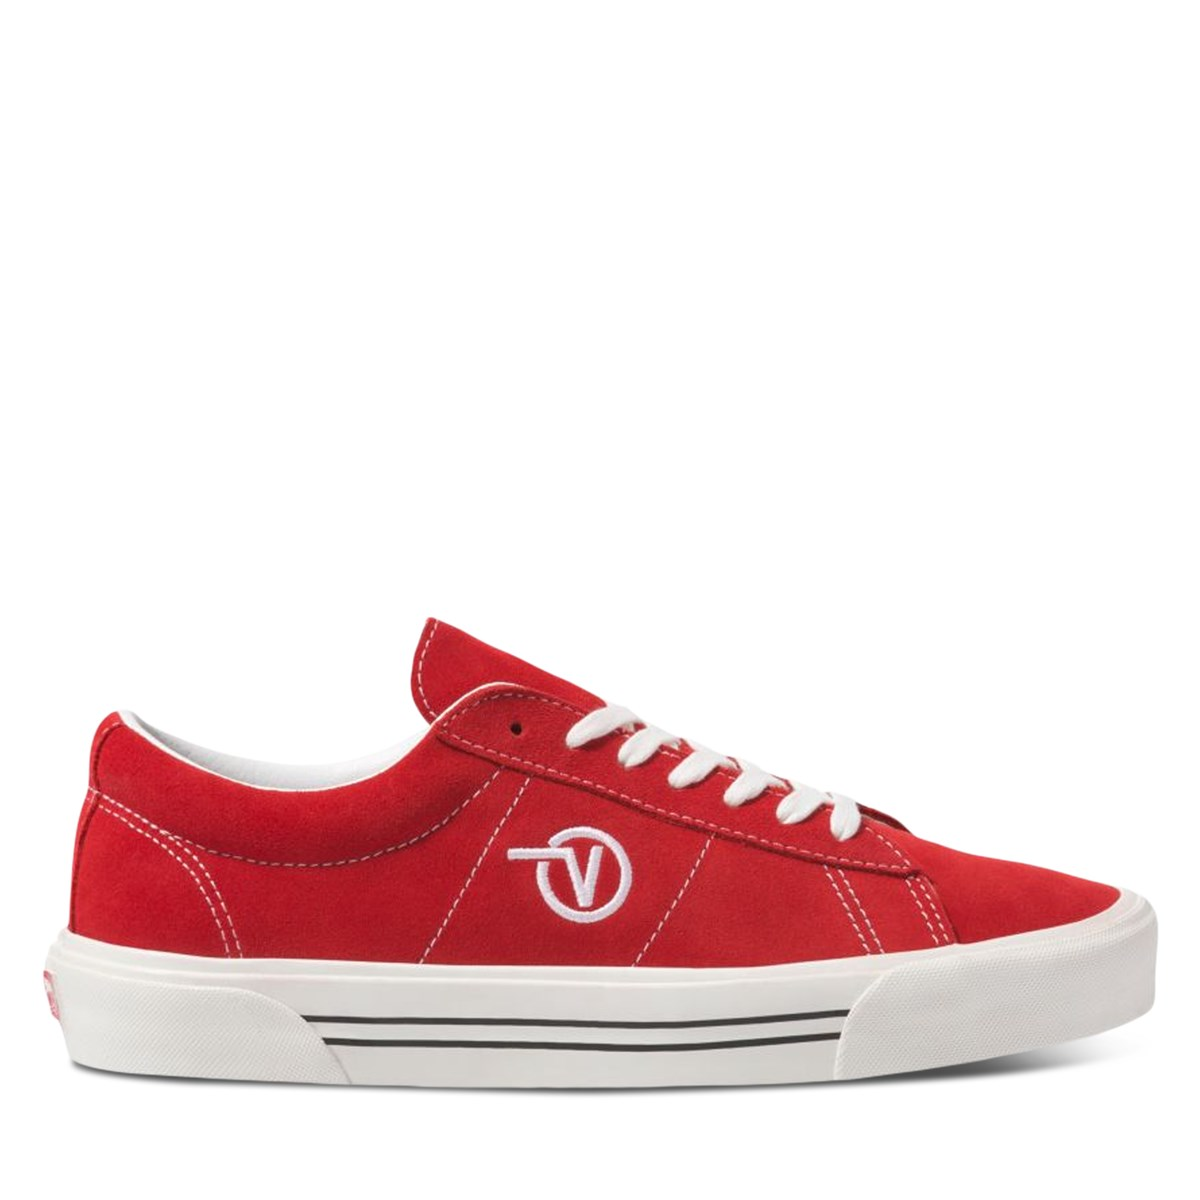 Women's Anaheim Factory Sid DX Sneakers in Red